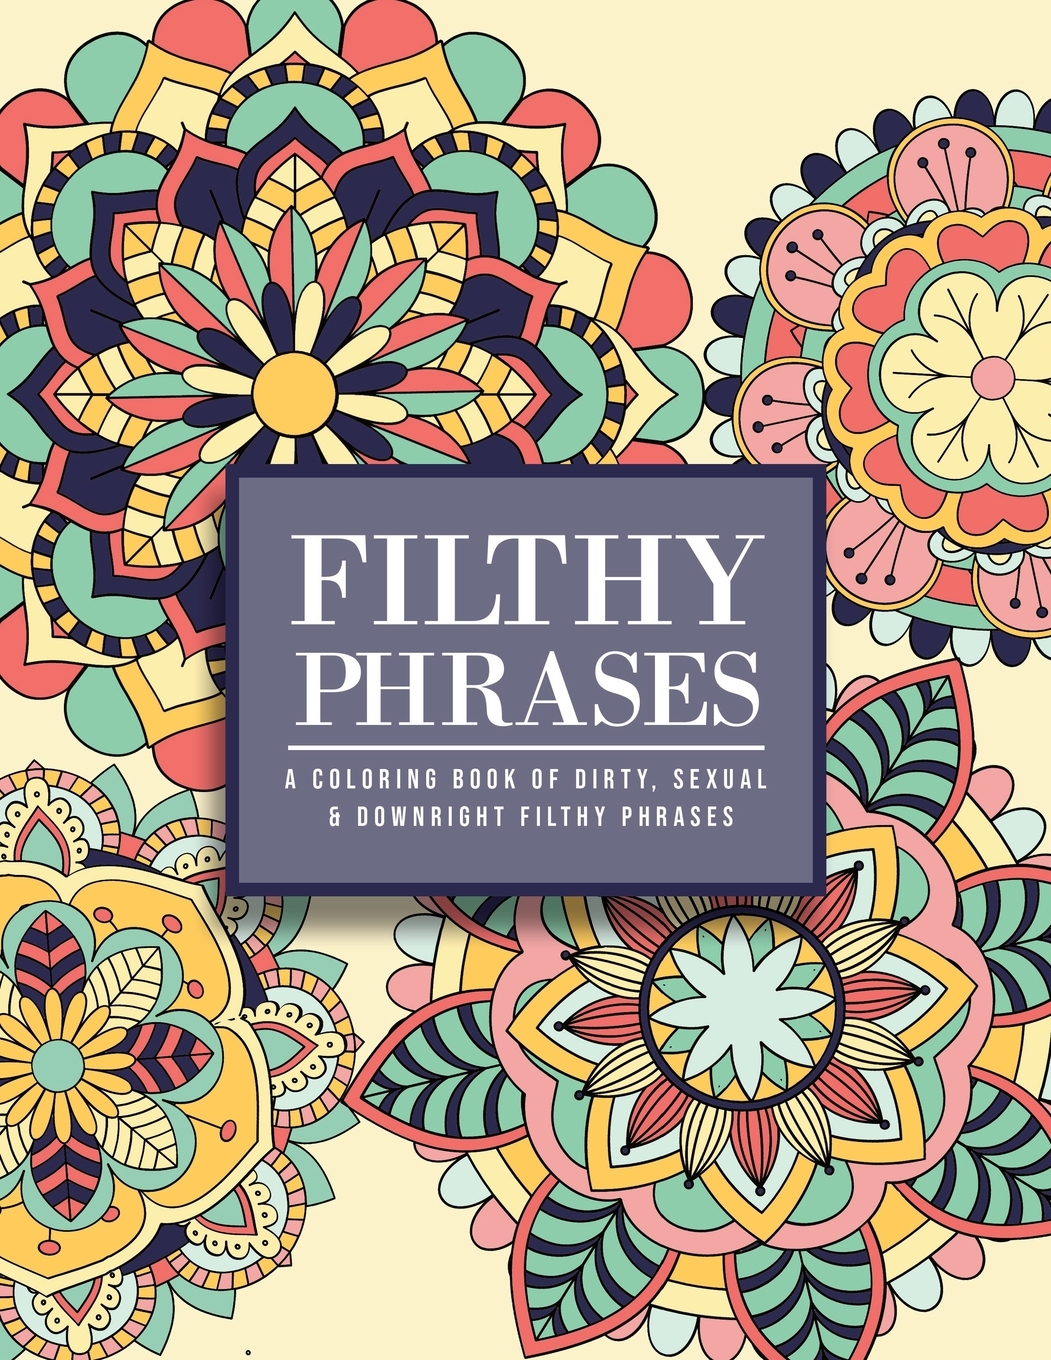 Filthy Phrases : An Adult Coloring Book Of Dirty, Sexual And Downright  Filthy Phrases (Paperback) - Walmart.com - Walmart.com